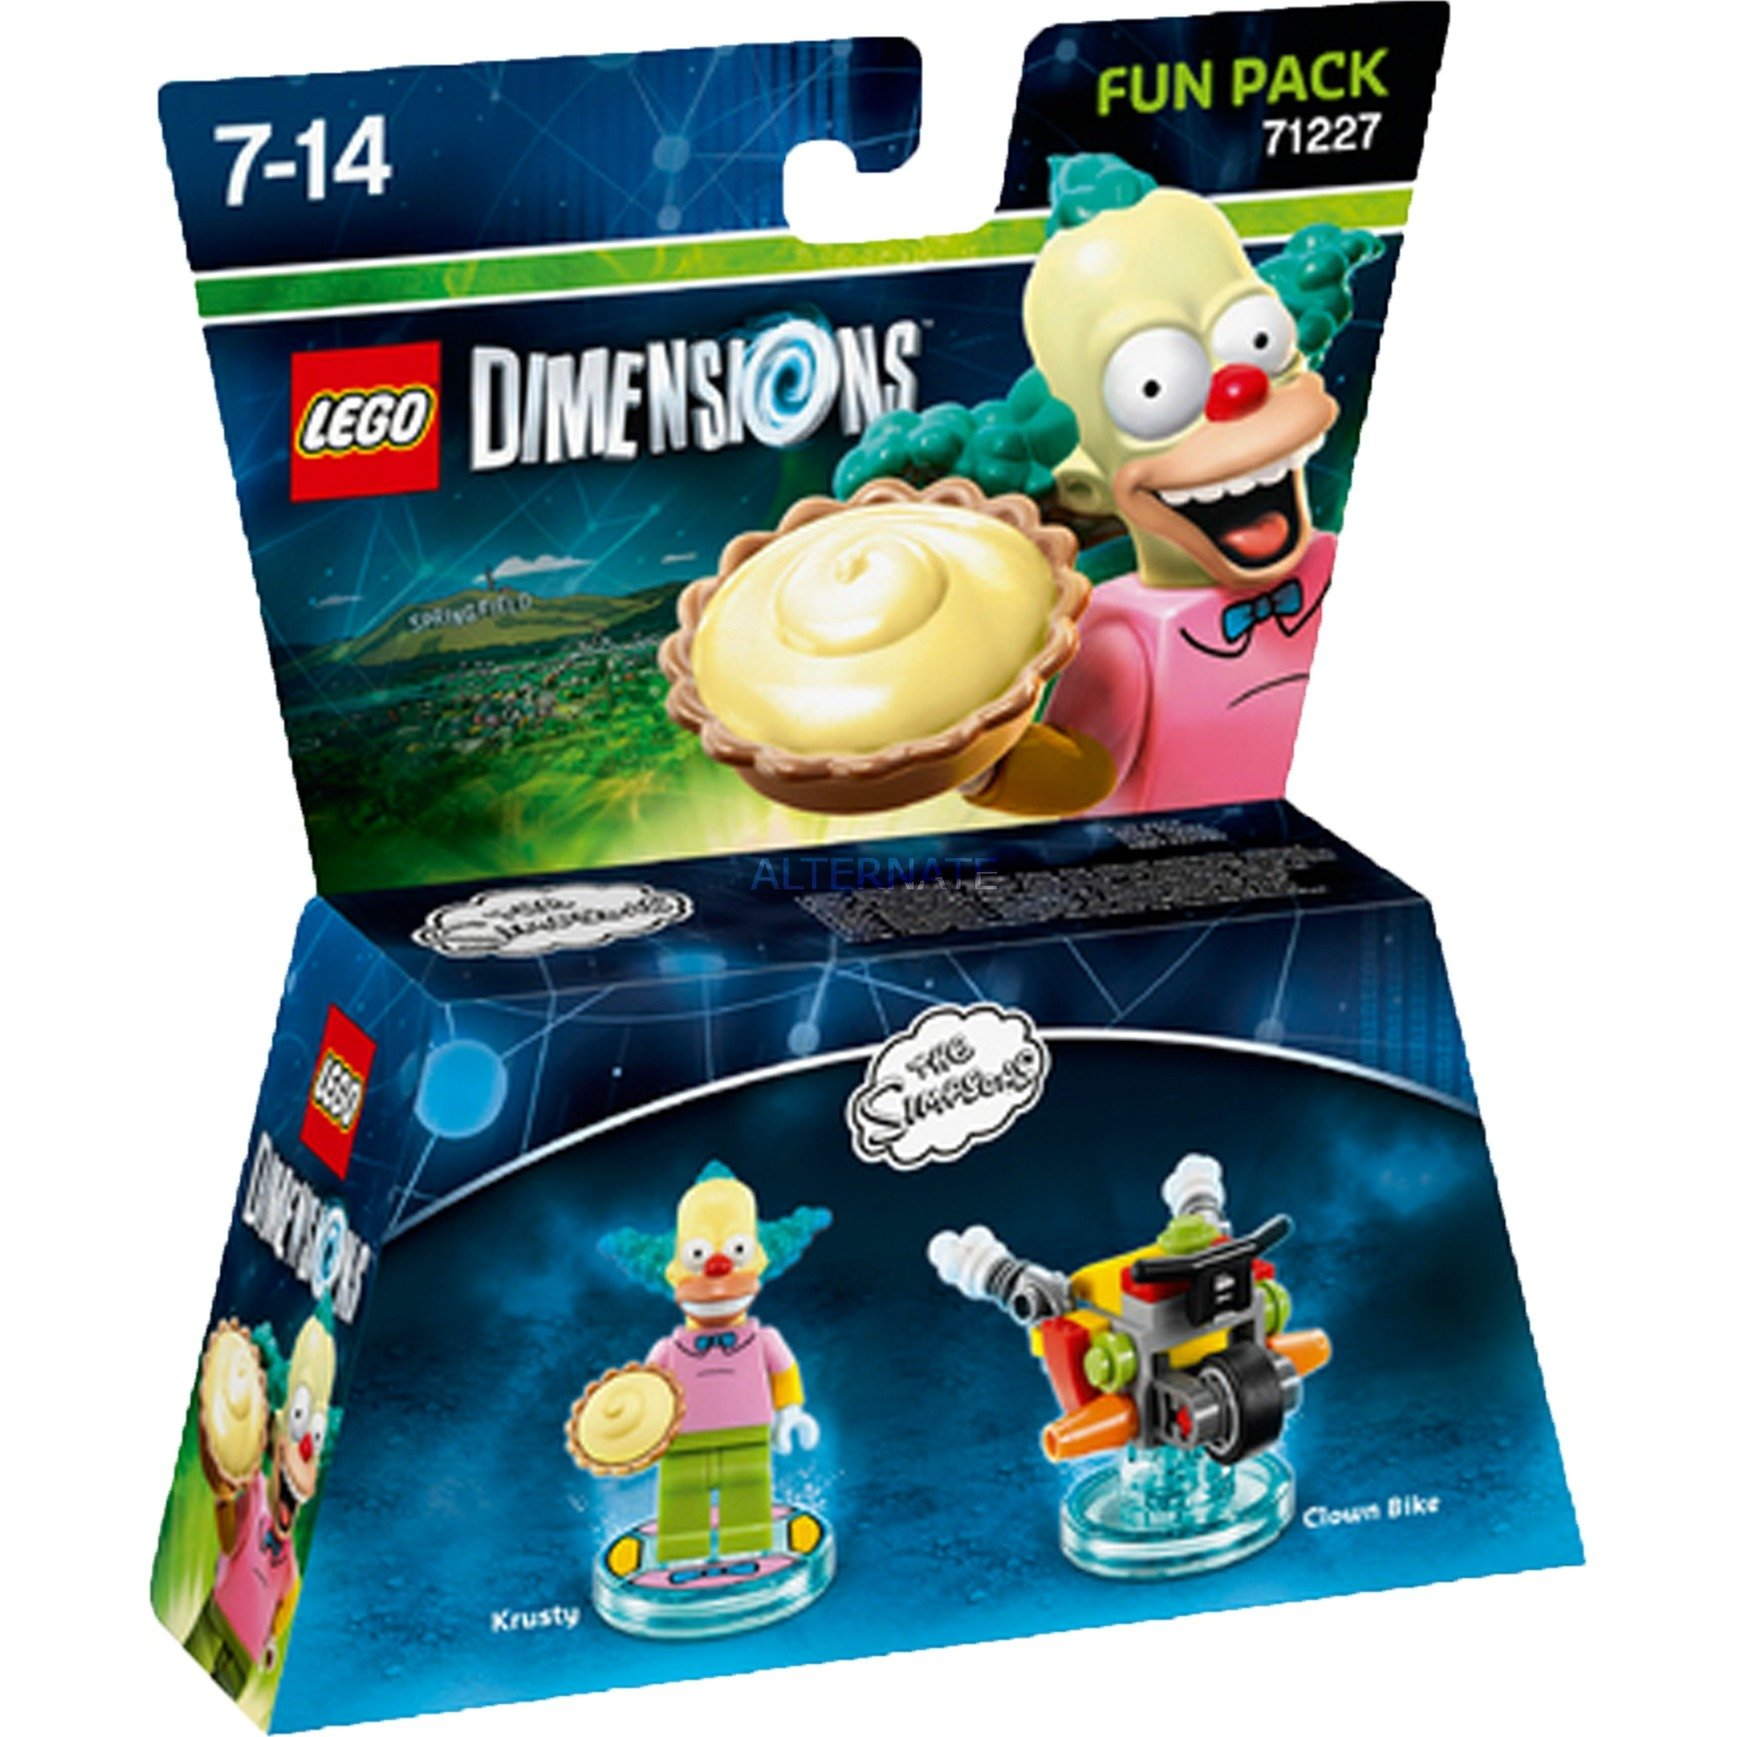 lego-dimensions-fun-pack-krusty-spil-figur